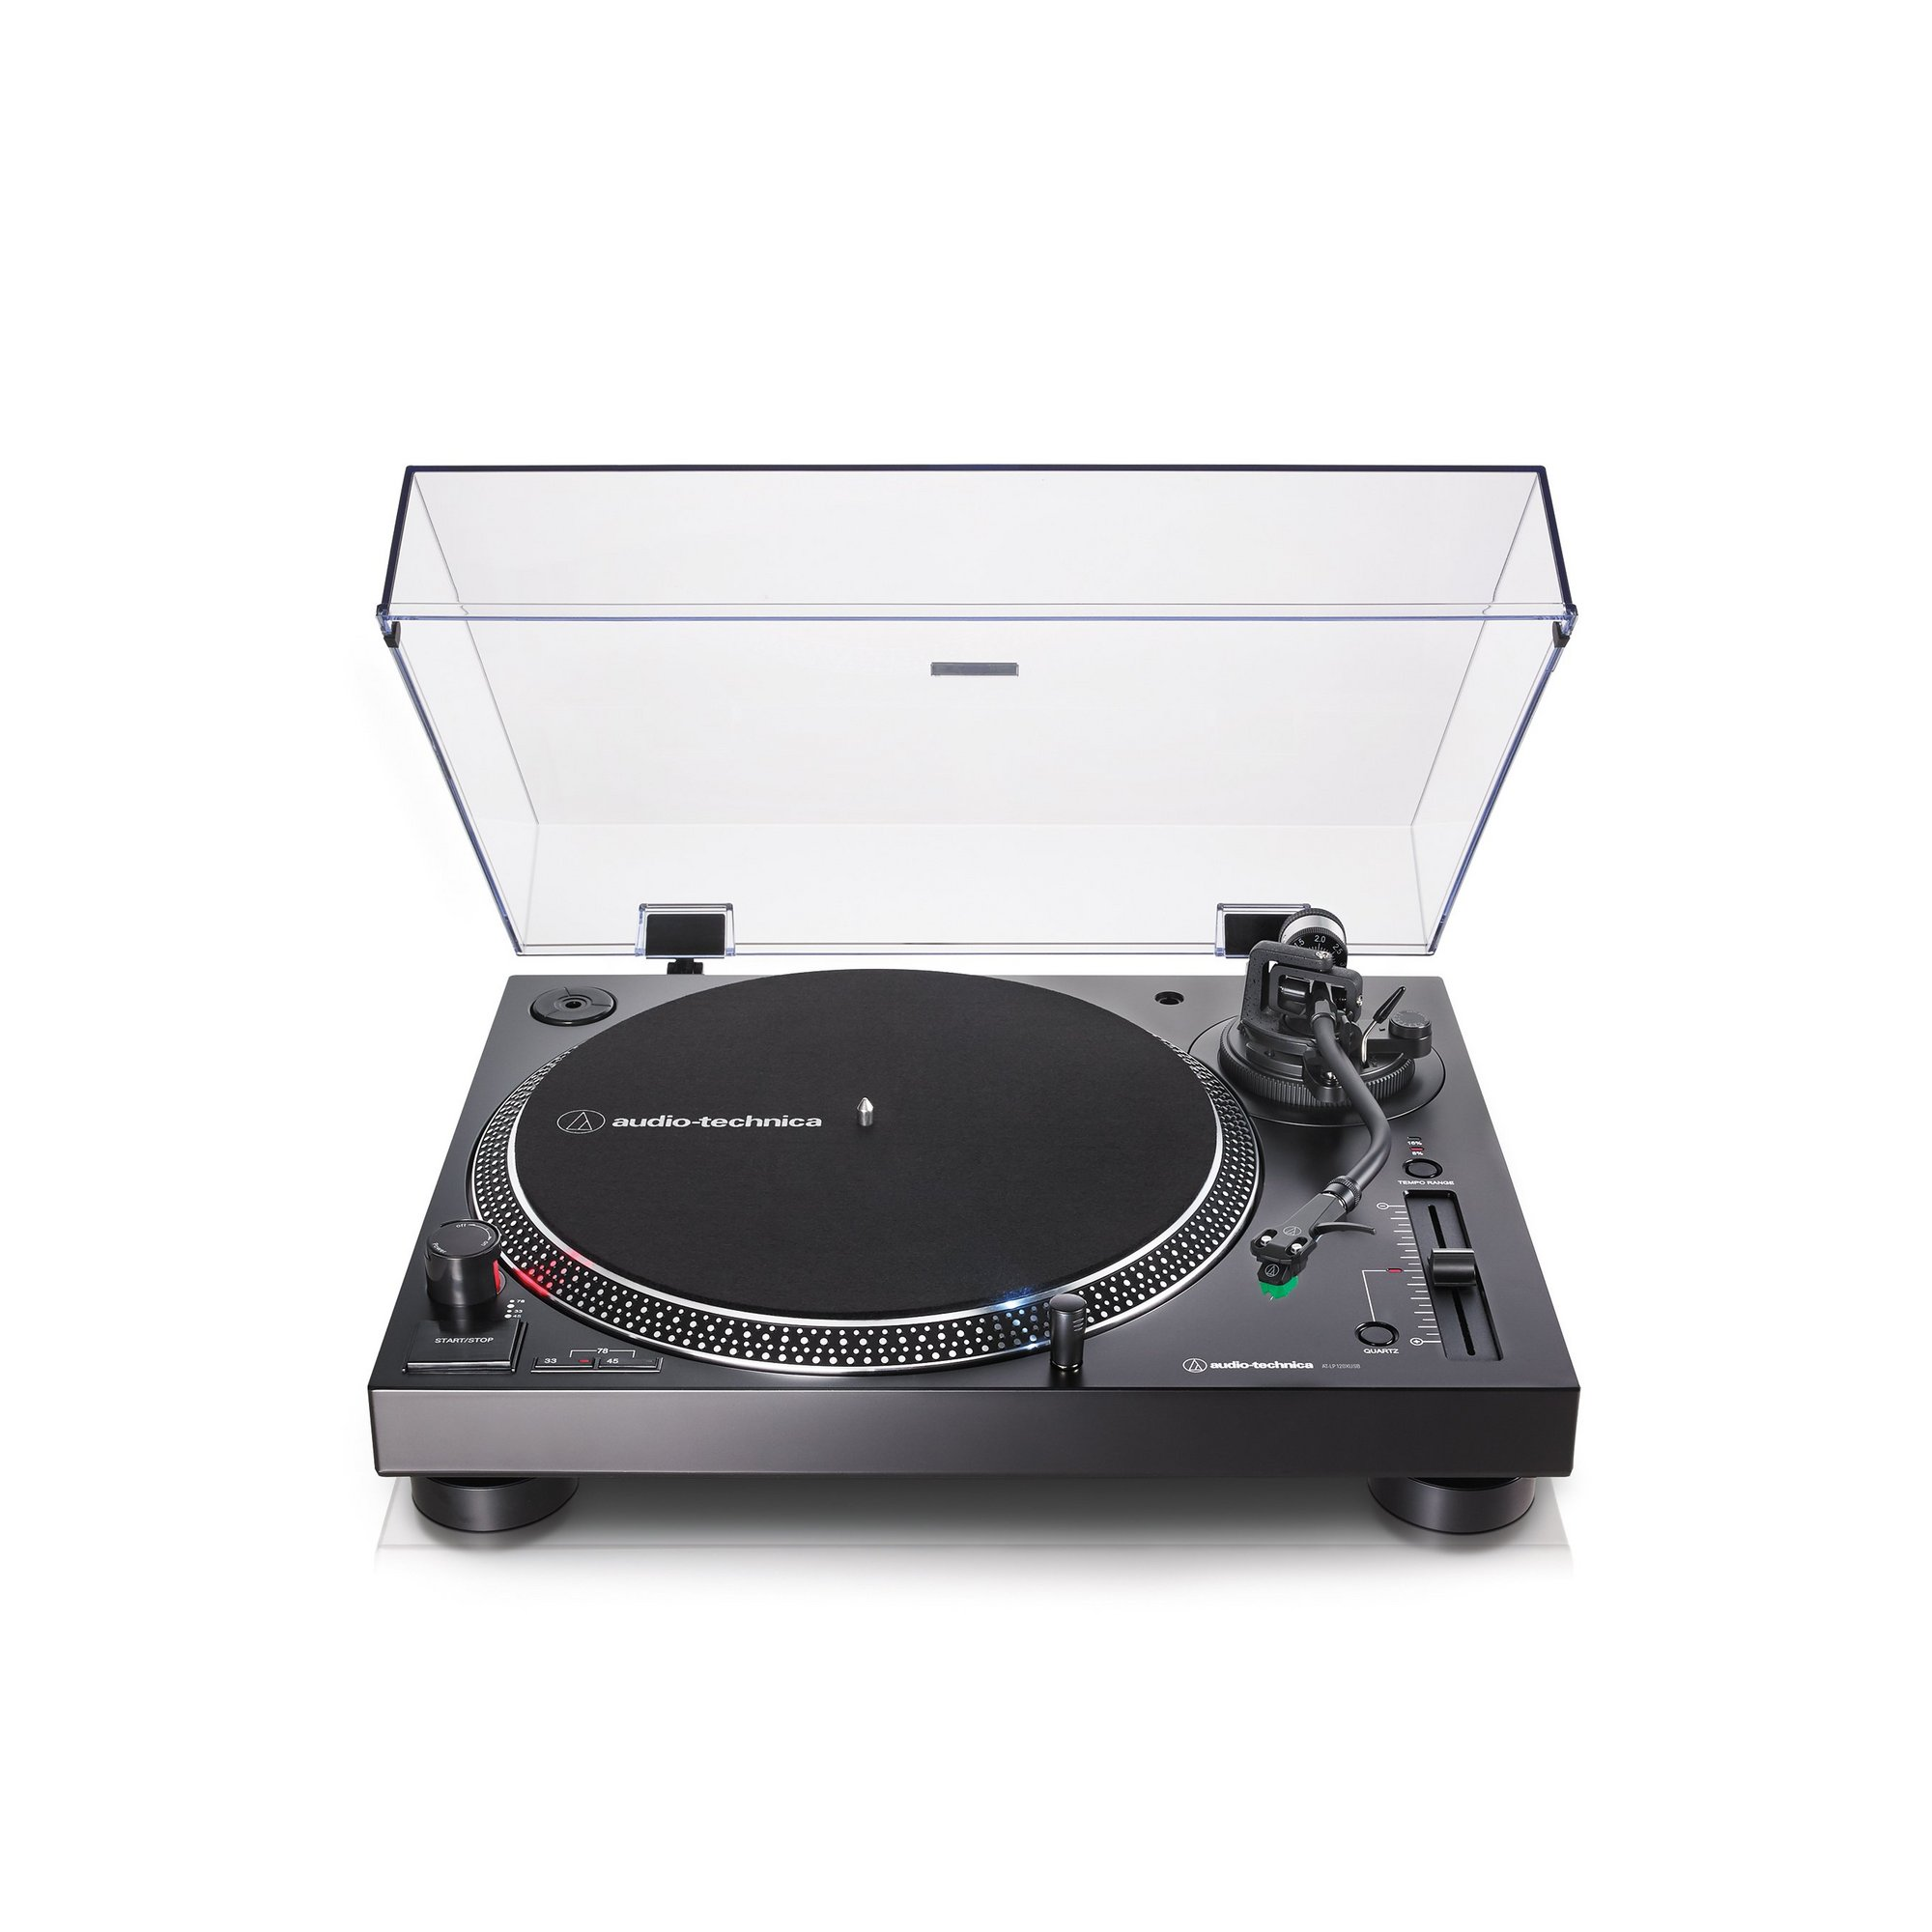 Image of Audio Technica Professional AT-LP120XUSB Turntable